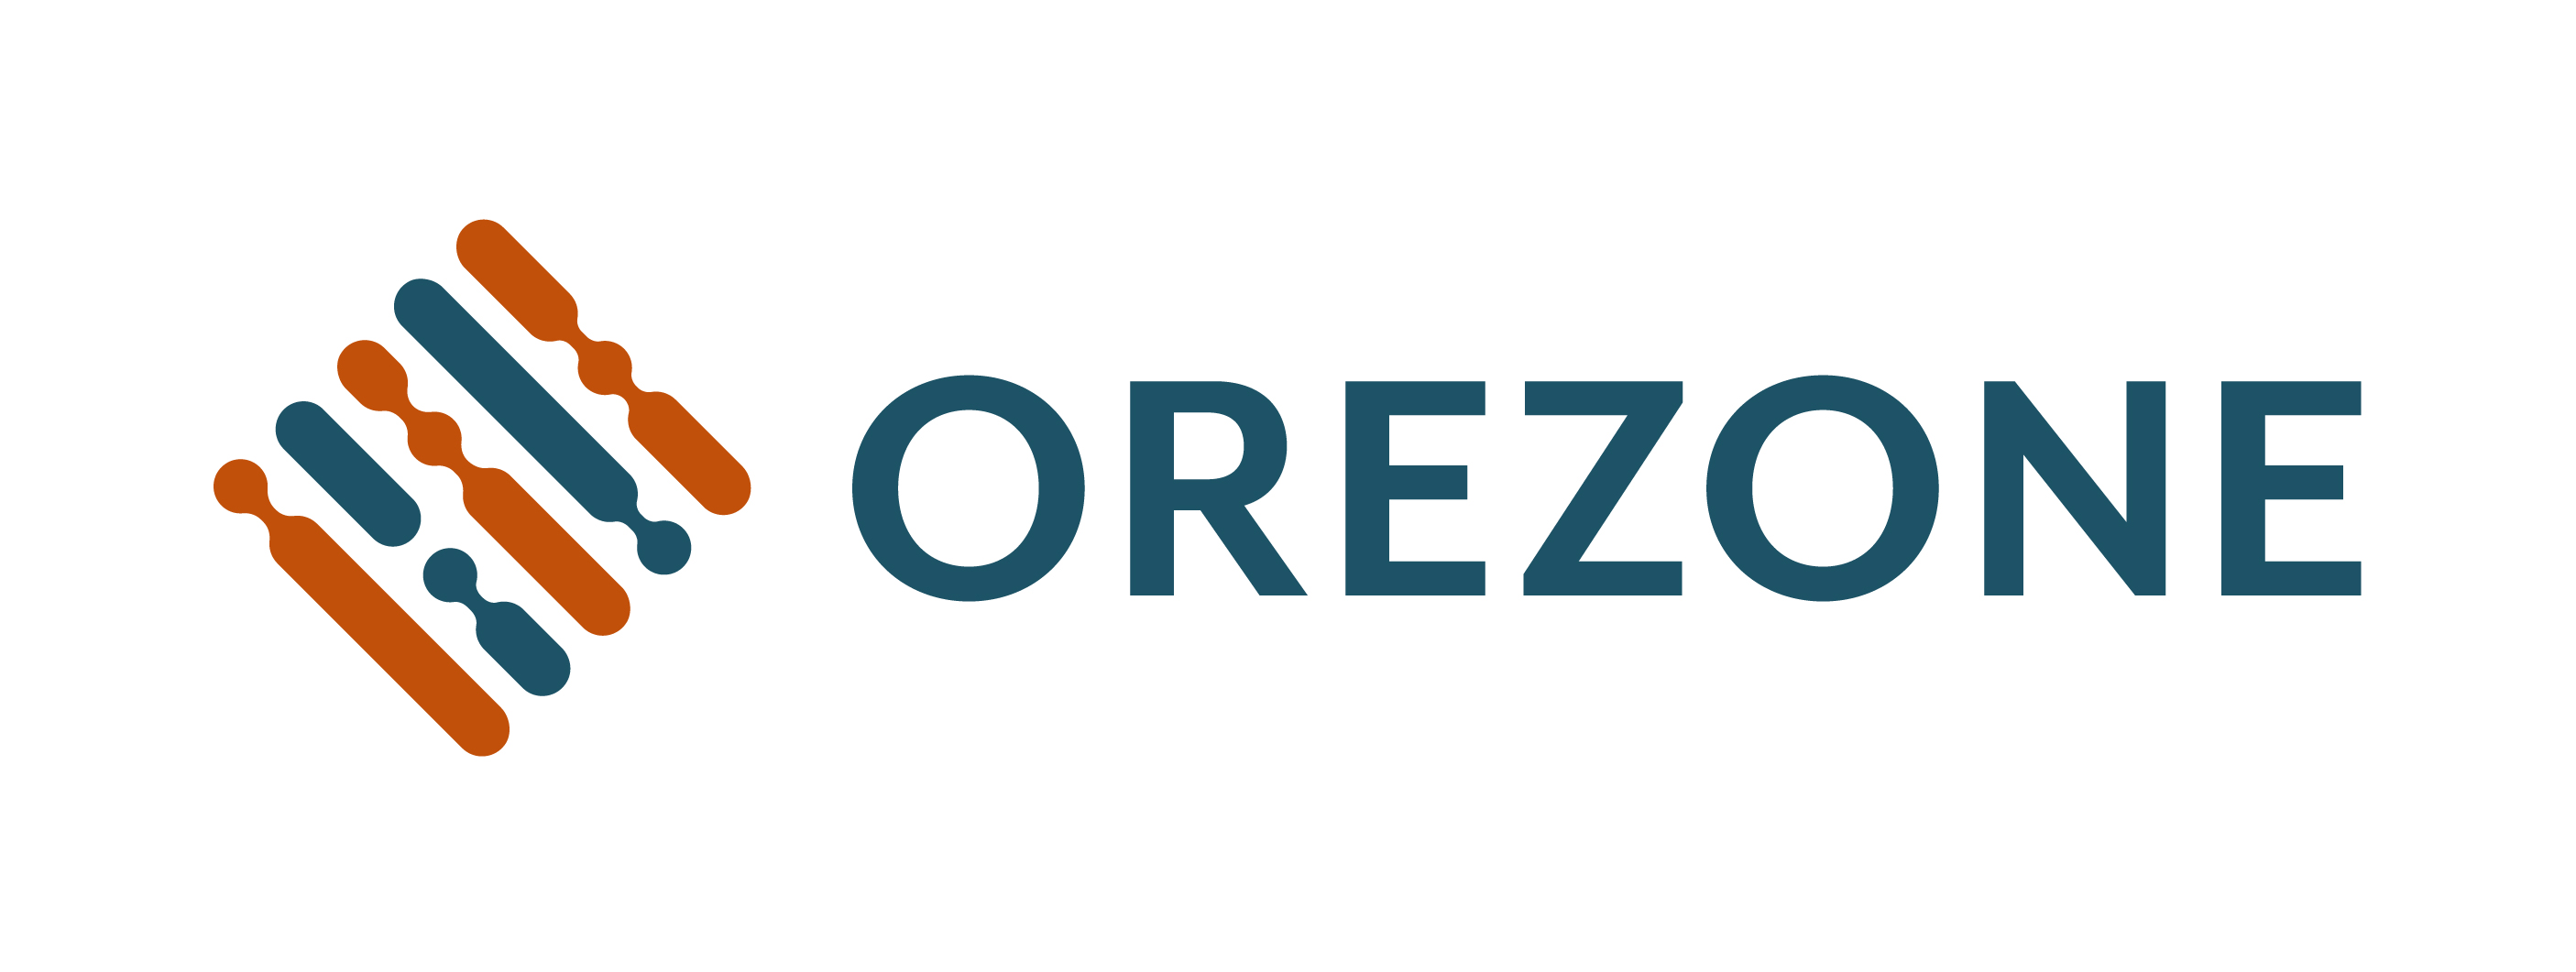 Orezone Commences Trading on the OTCQX Market in the U.S.